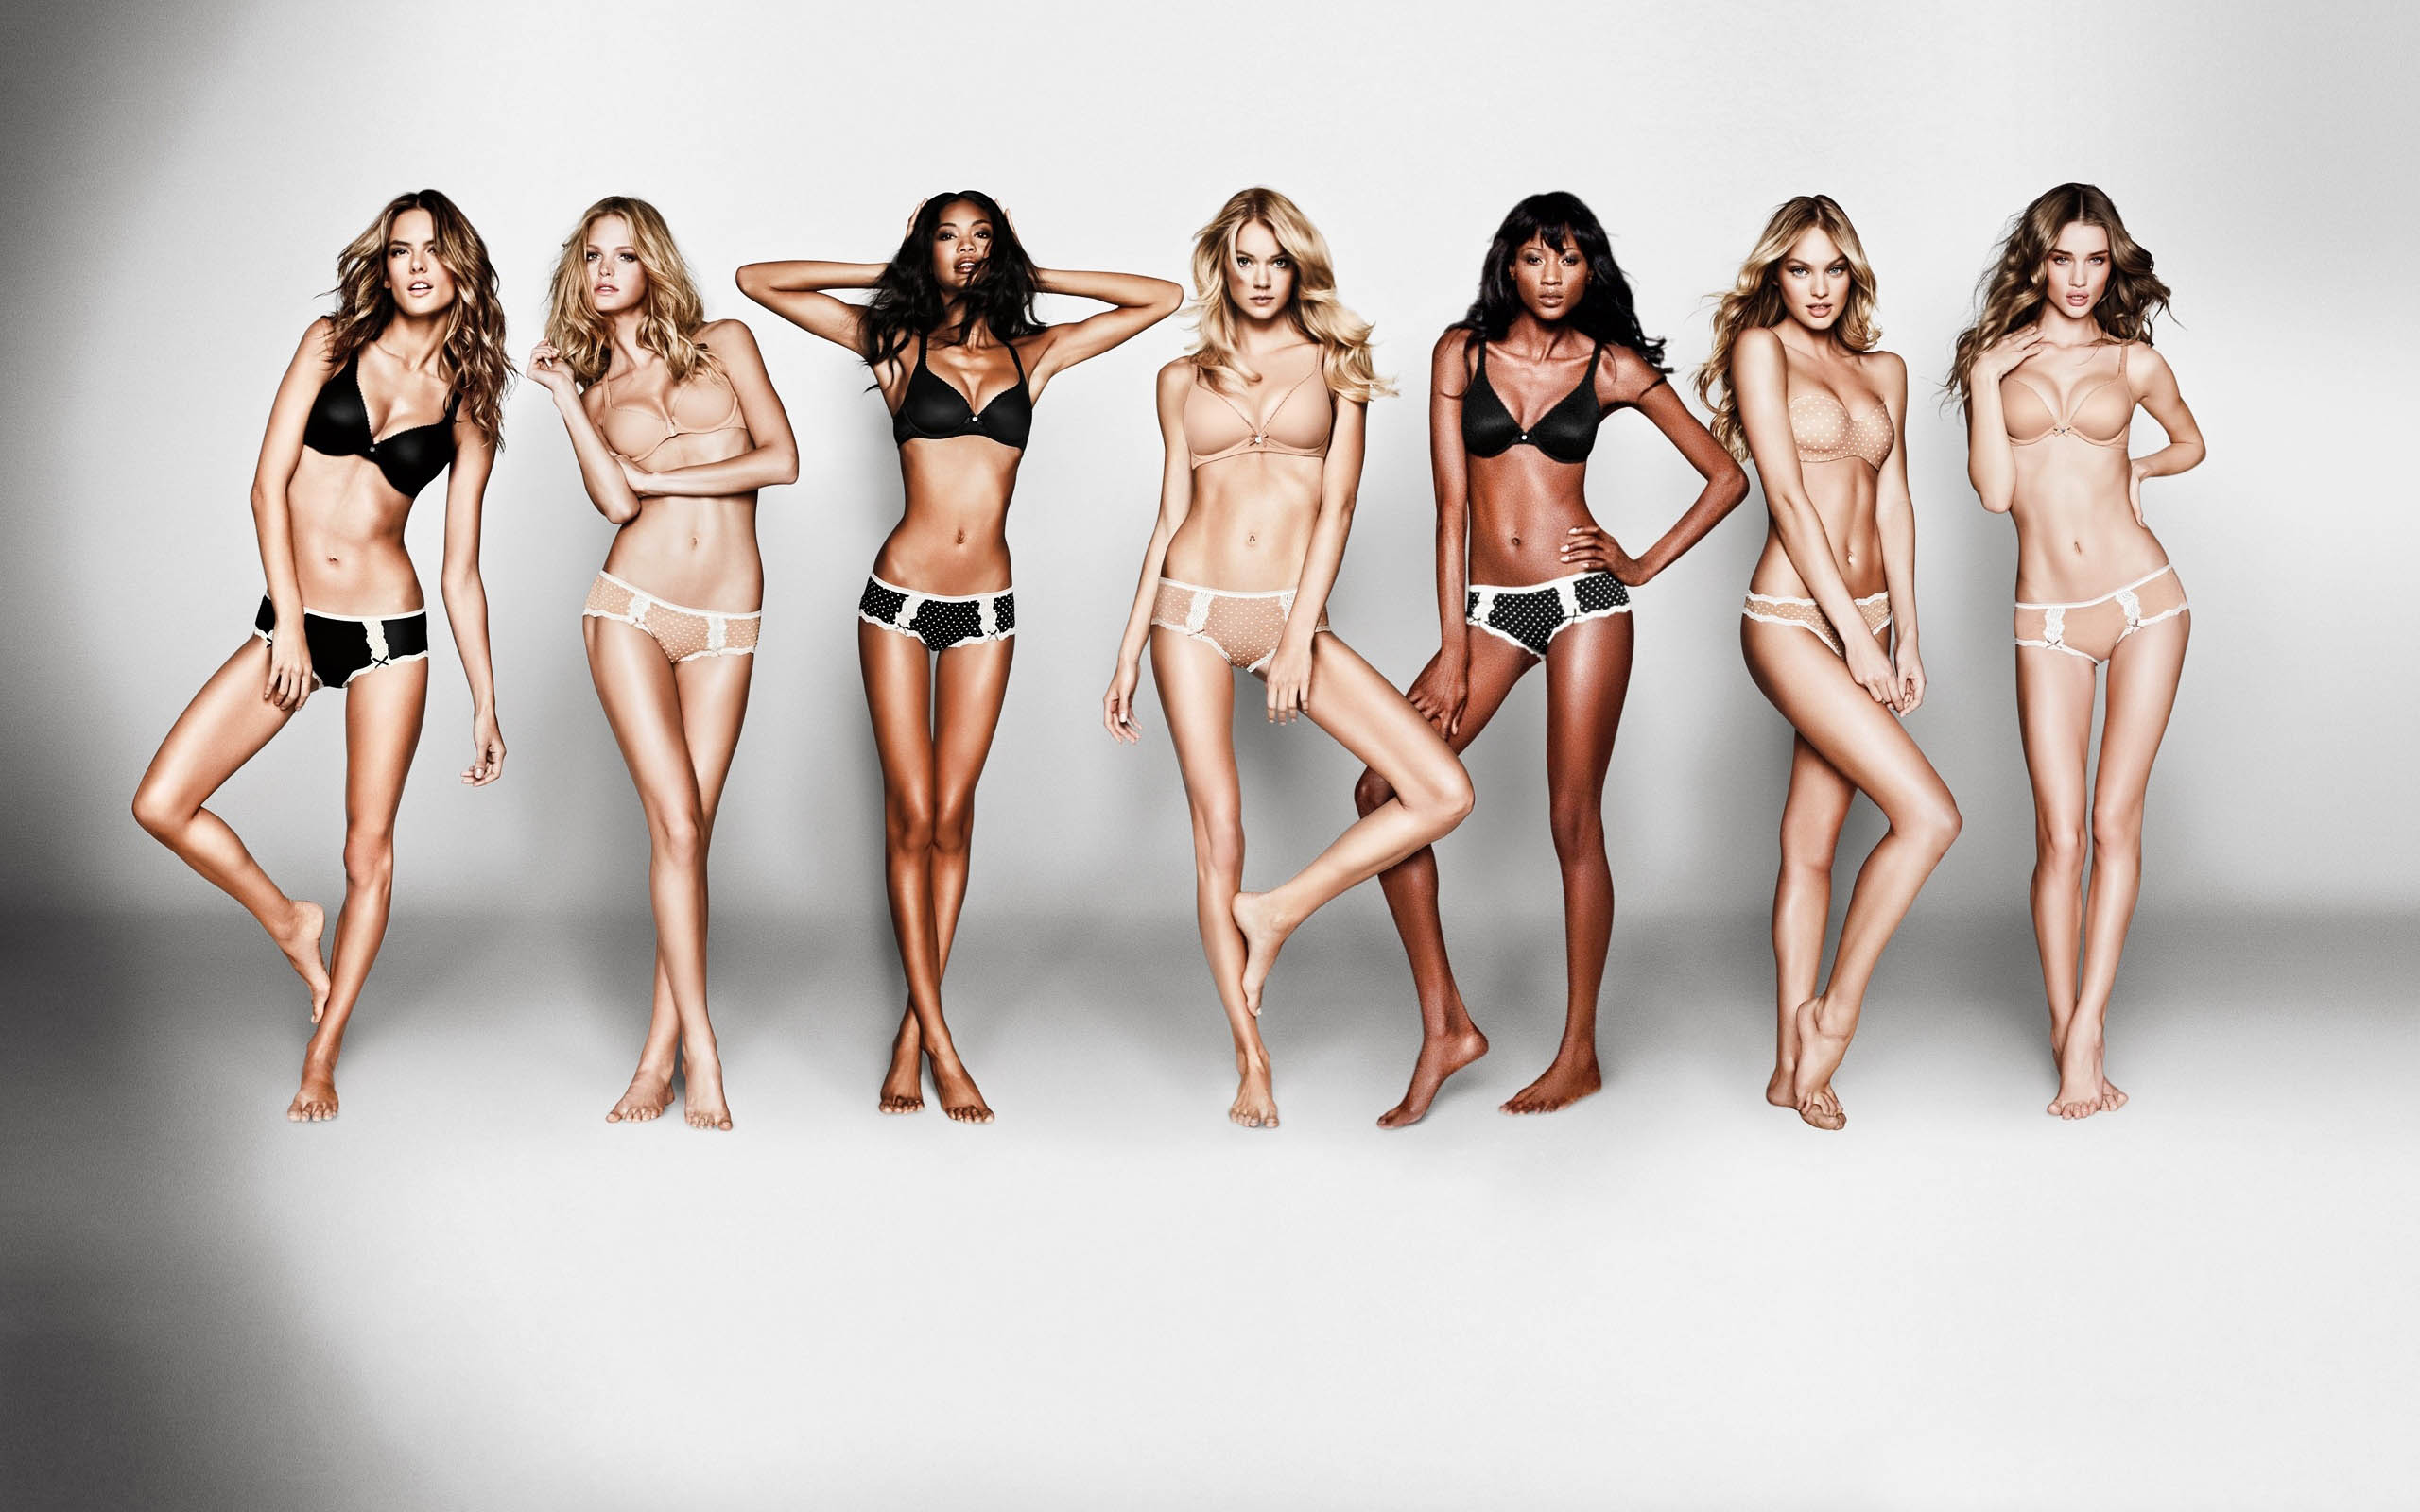 the unrealistic body image victorias secret portrays in society The portrayal of women in society the unrealistic image that media imposes is too with media influencing women and their own personal body image.